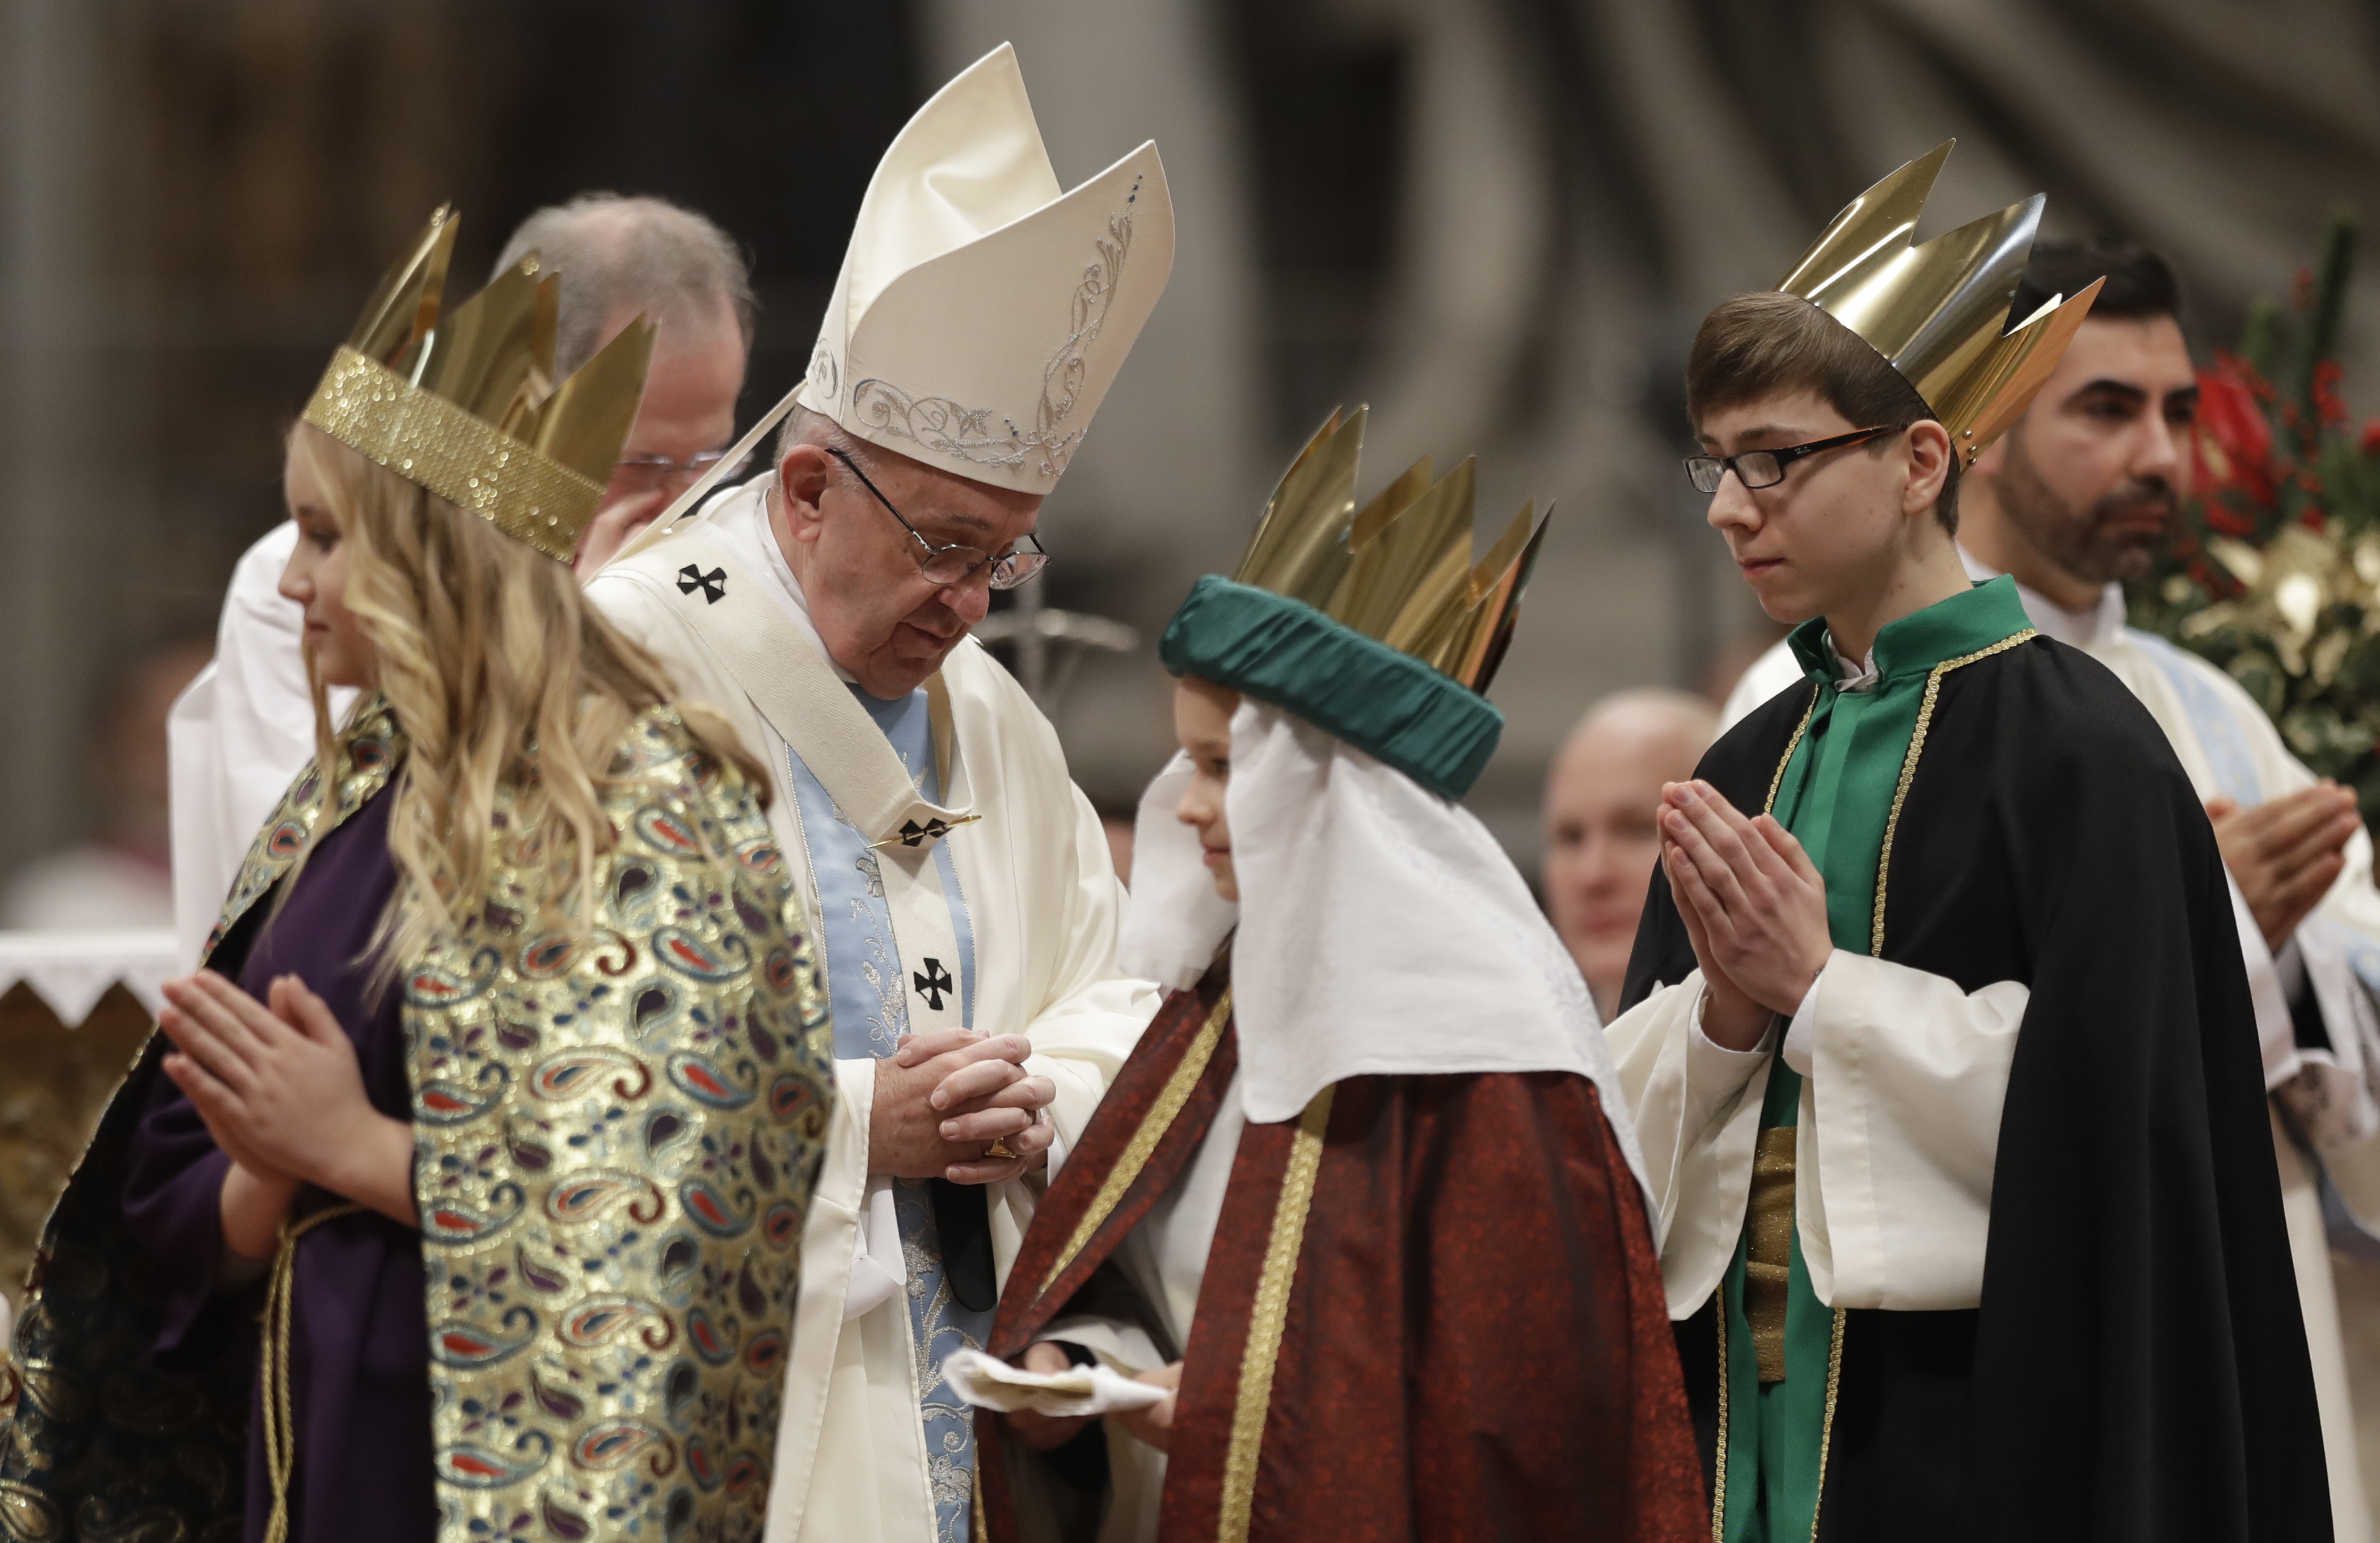 Pope Francis celebrates a new year's Mass in St. Peter's Basilica at the Vatican, Jan. 1, 2017.